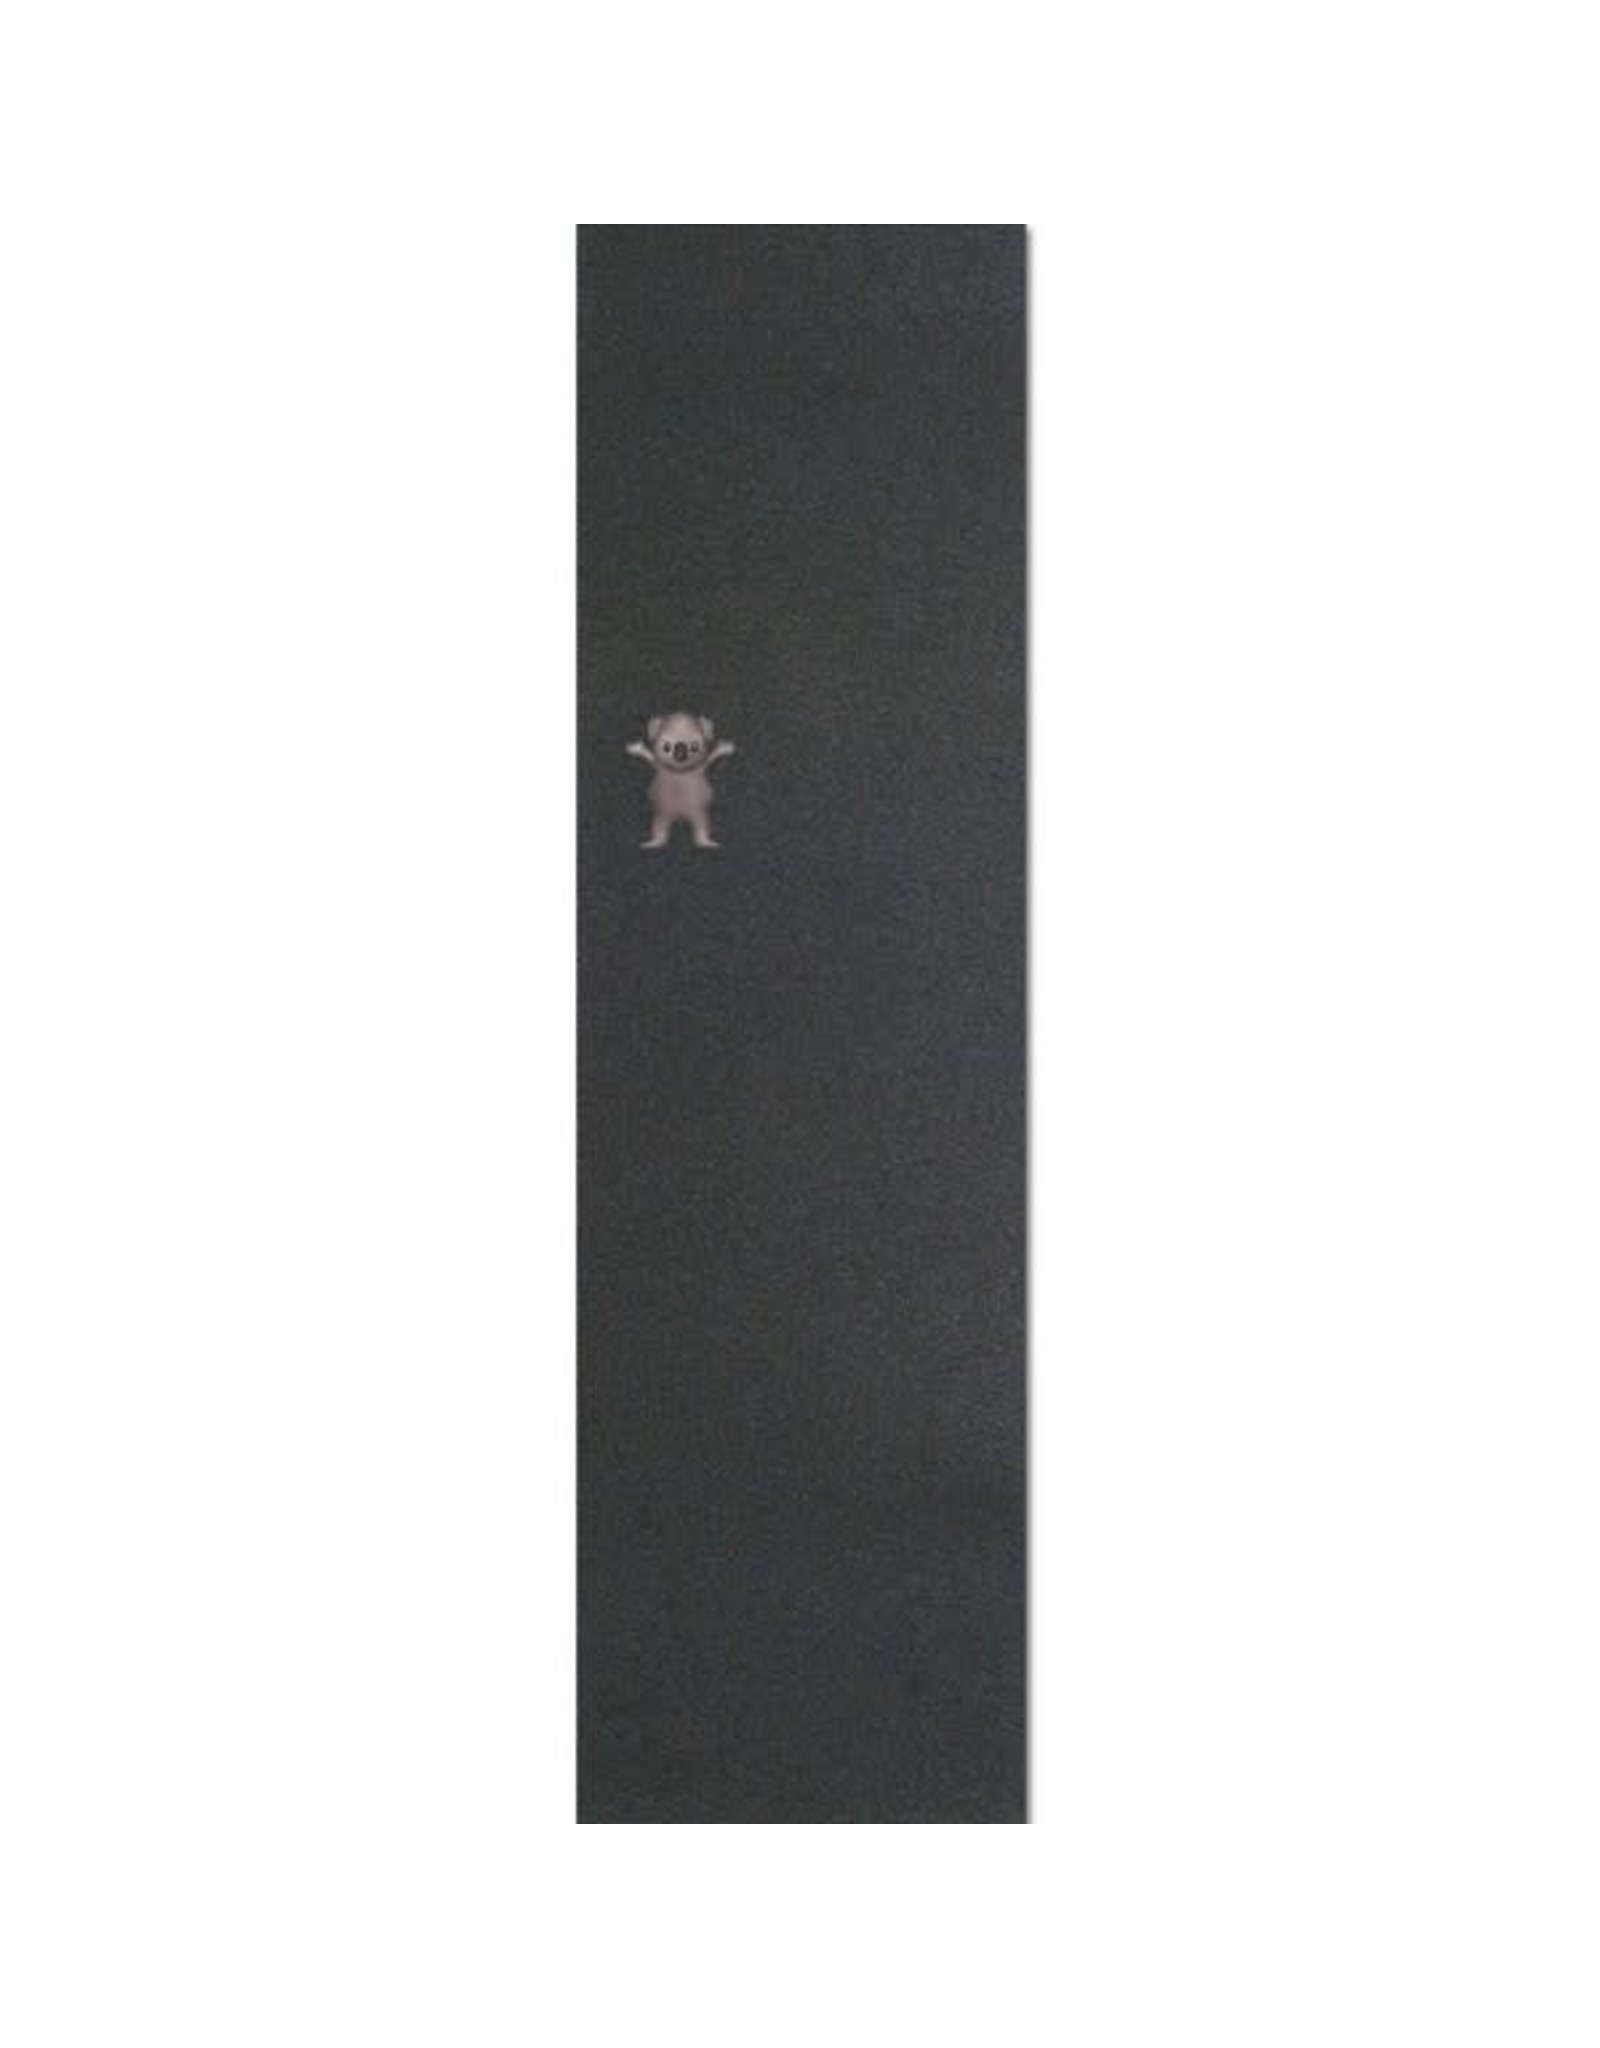 Grizzly Grizzly Shane O'Neil Griptape Sheet Black 9.0